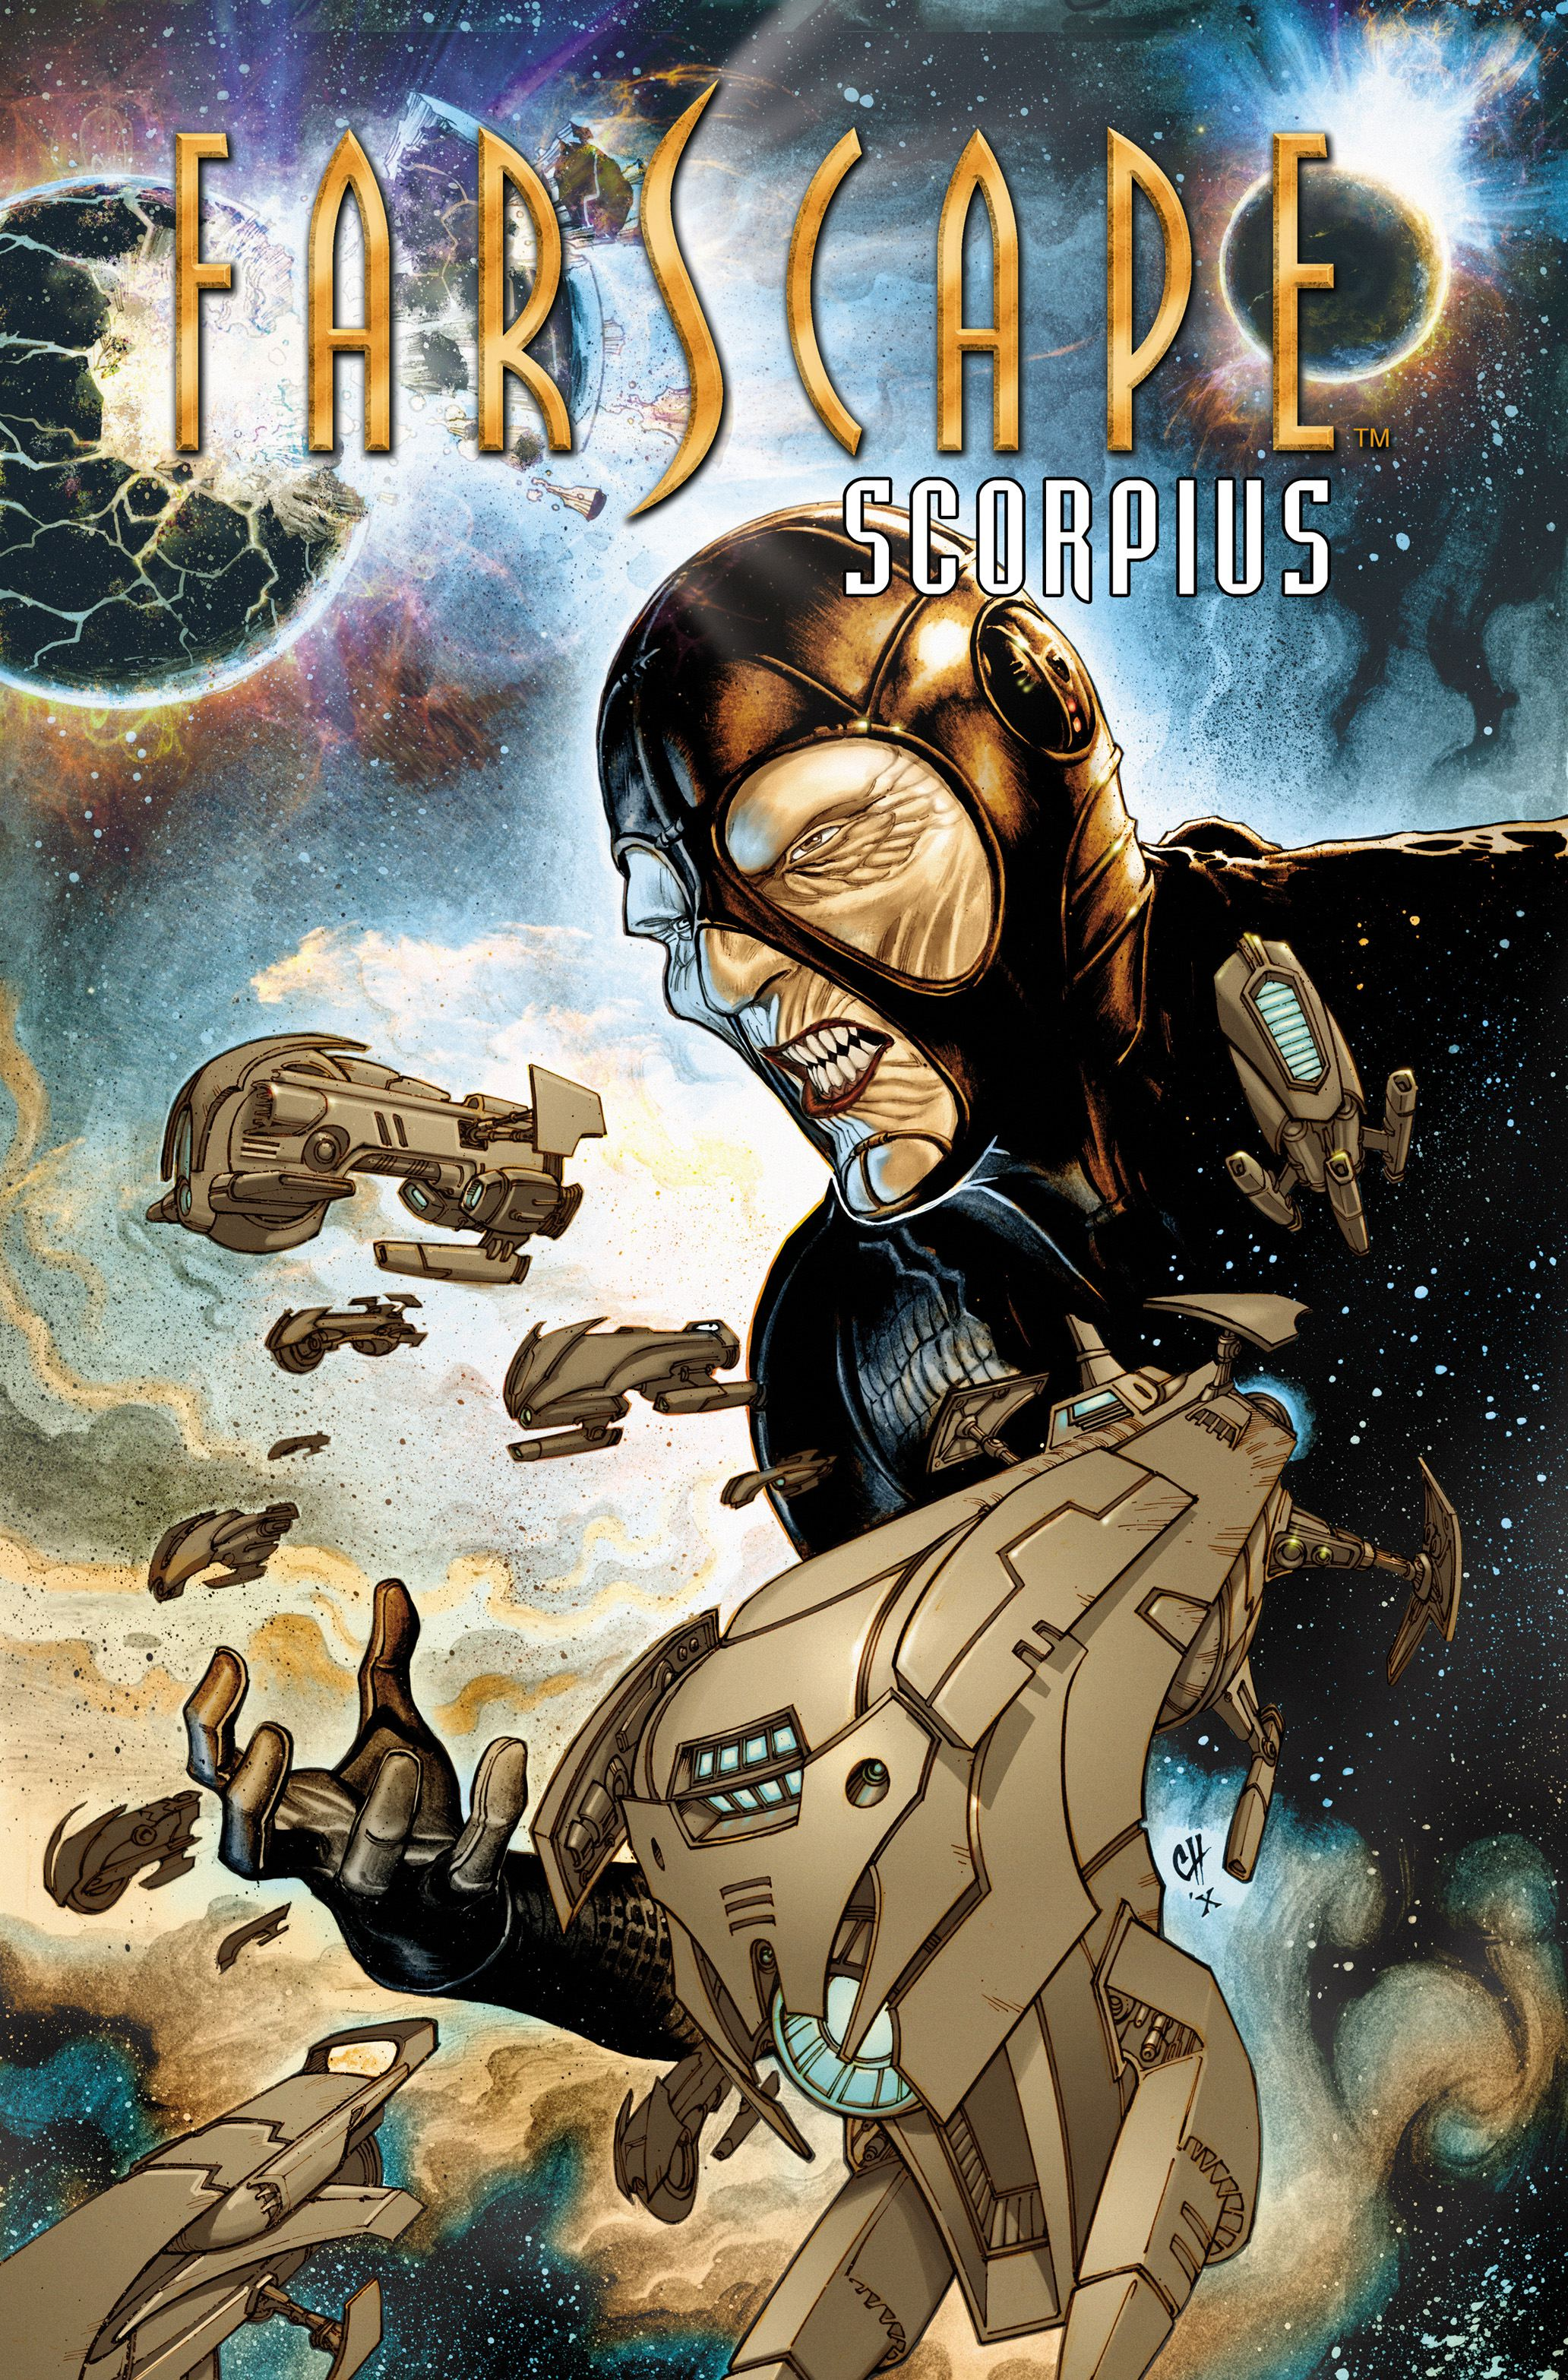 Farscape-scorpius-vol-2-9781608866175_hr